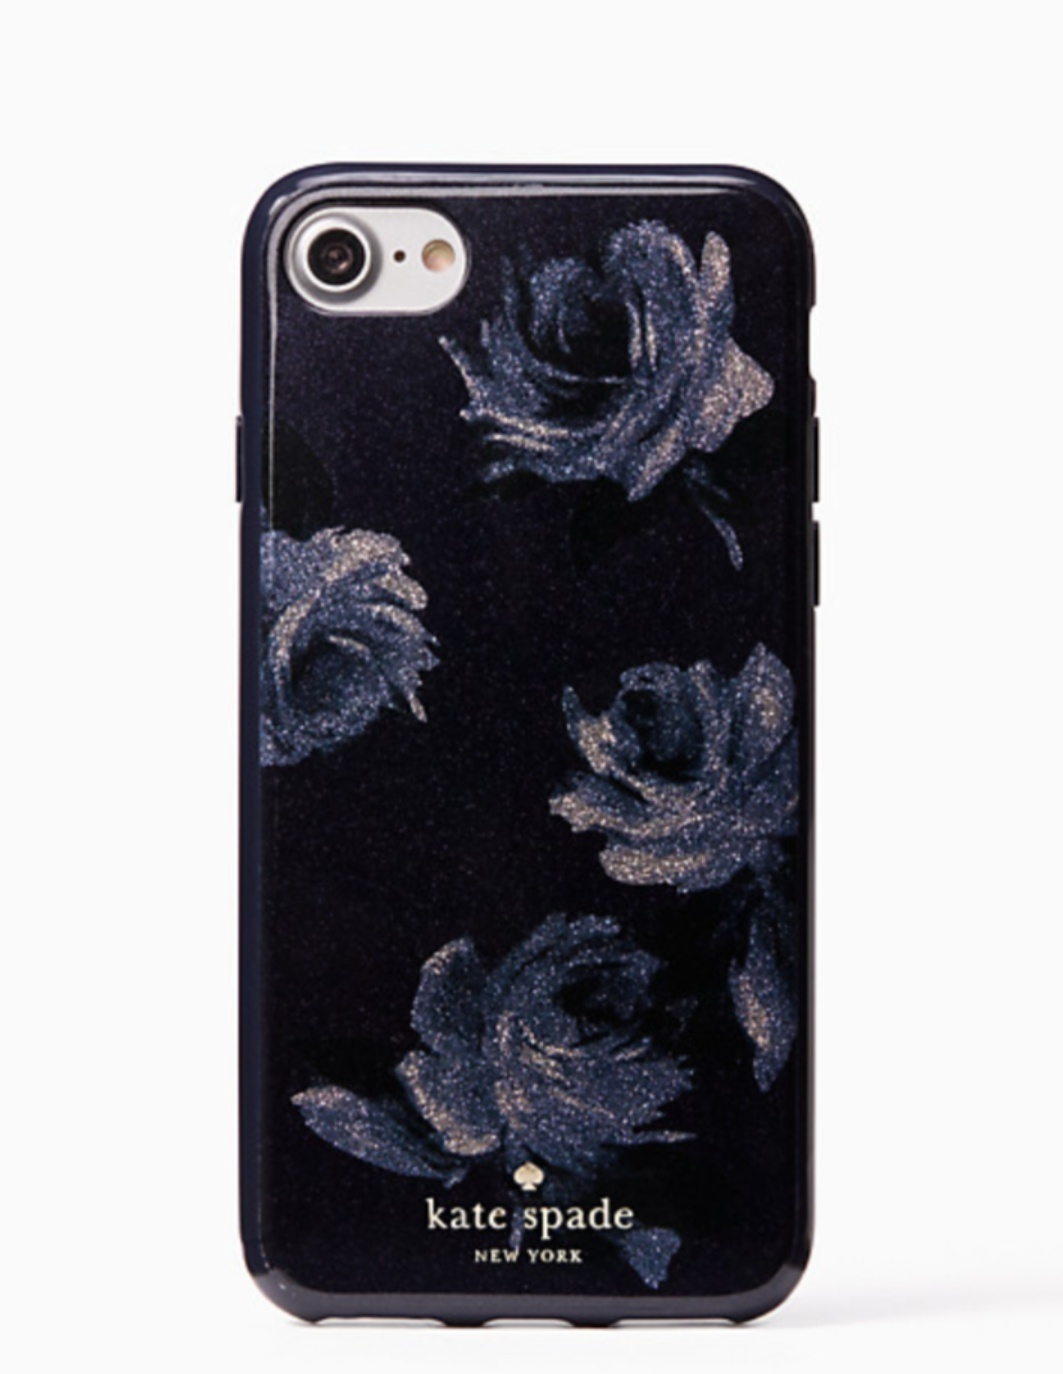 【kate spade new york】night rose glitter iphone 7/8 case